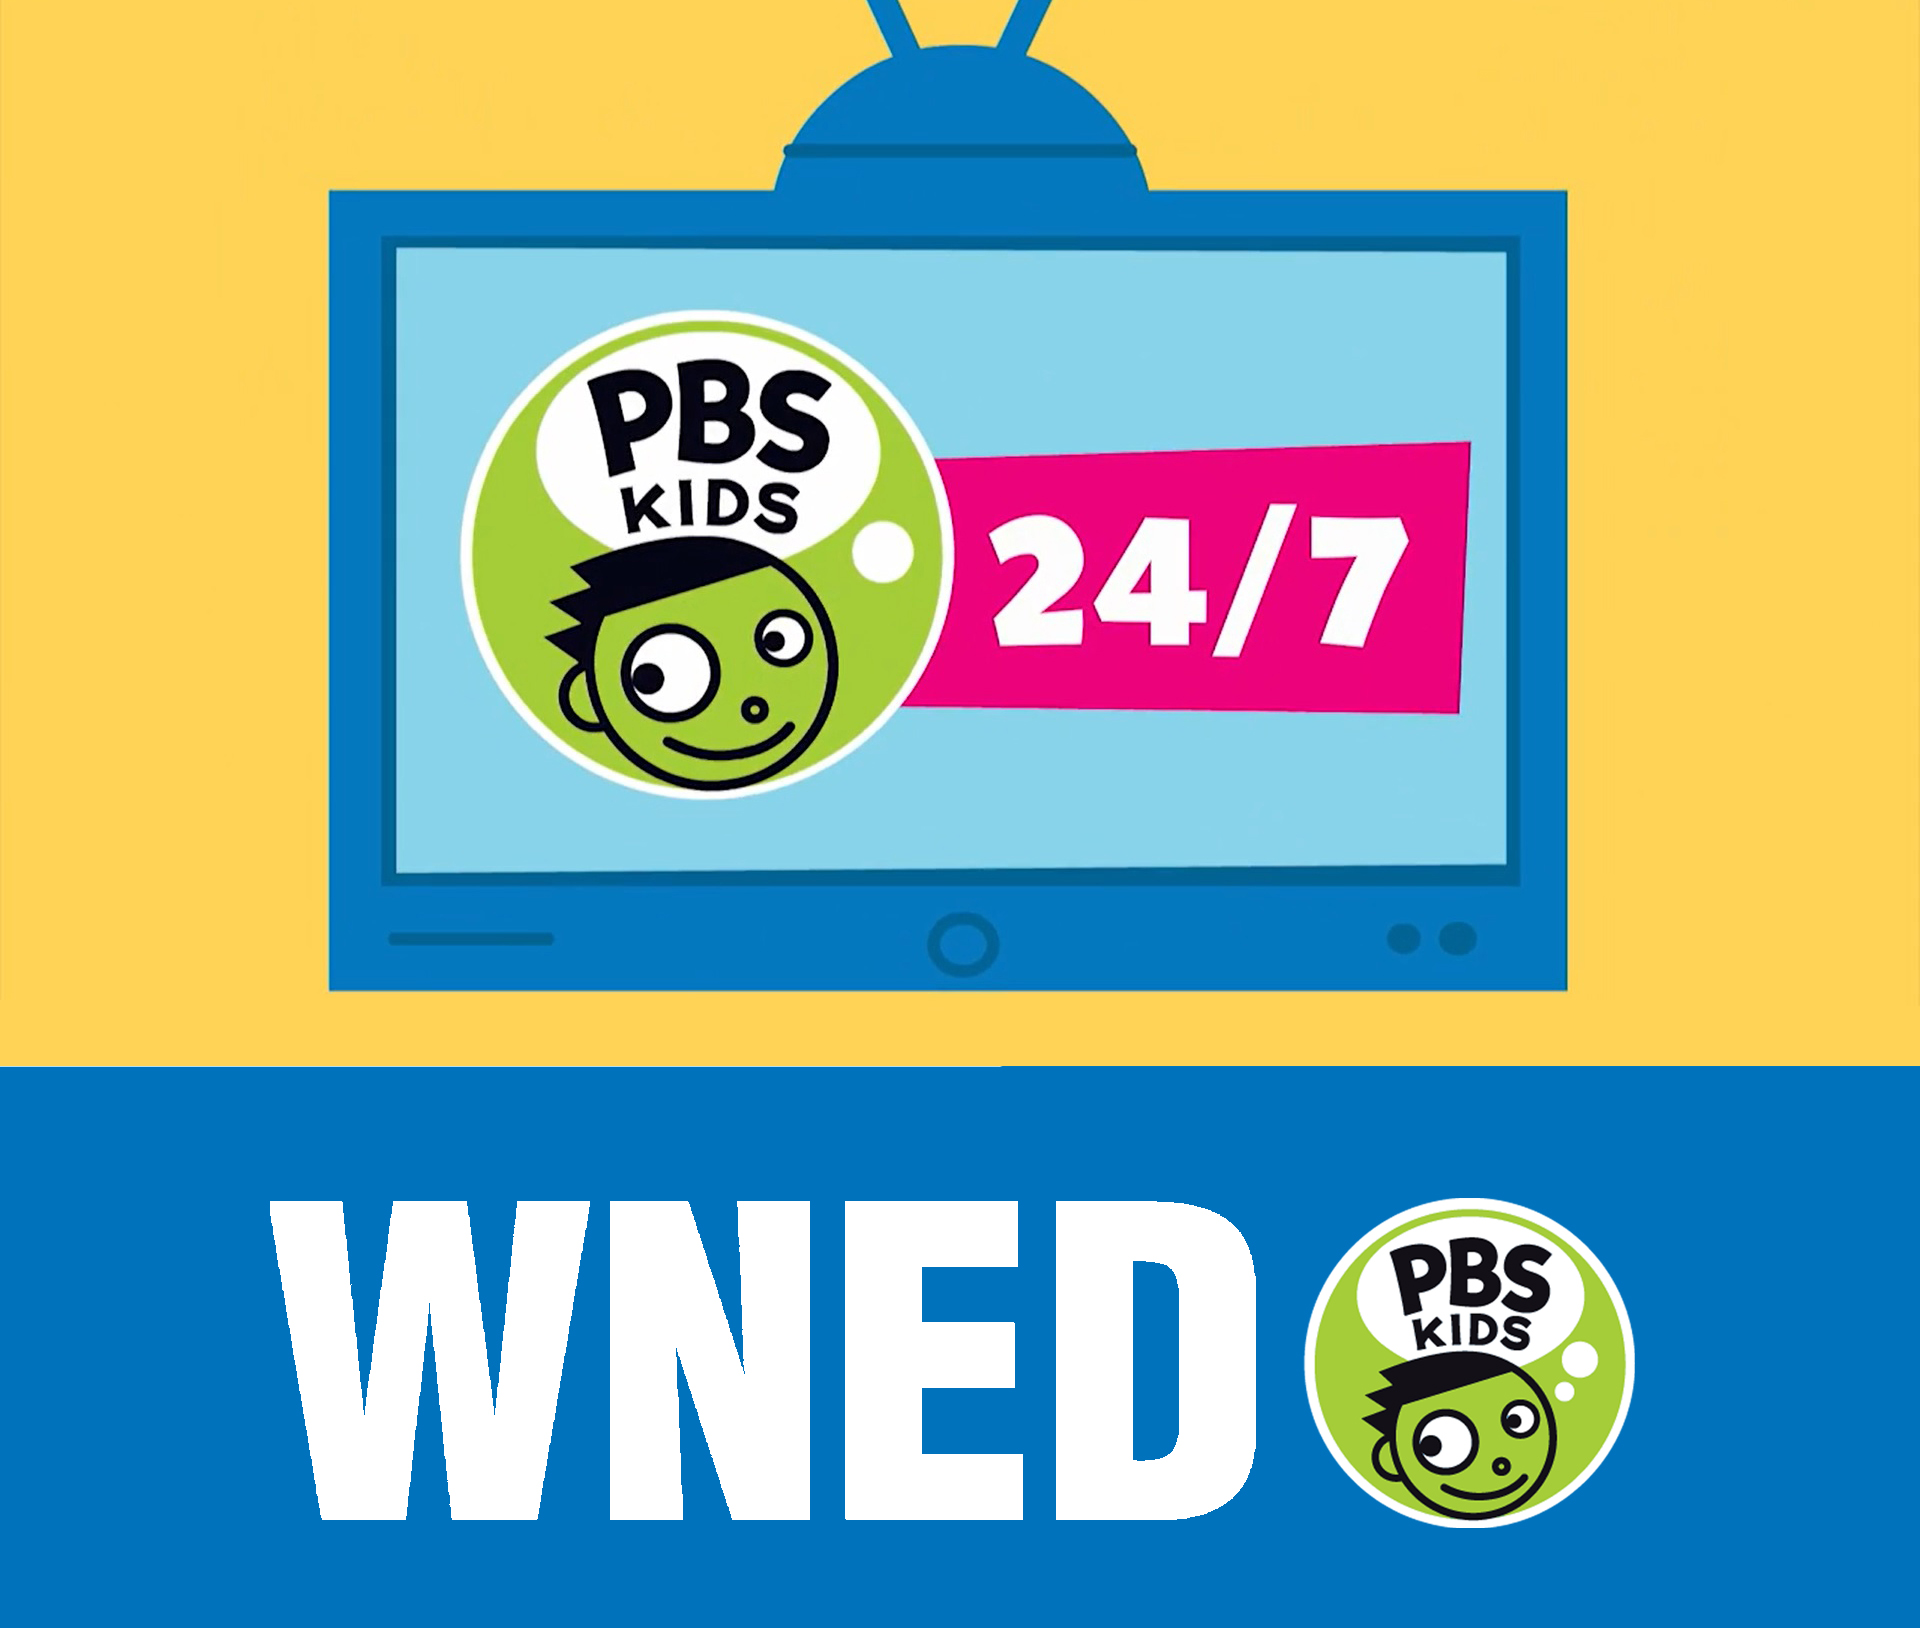 WNED PBS KIDS Channel